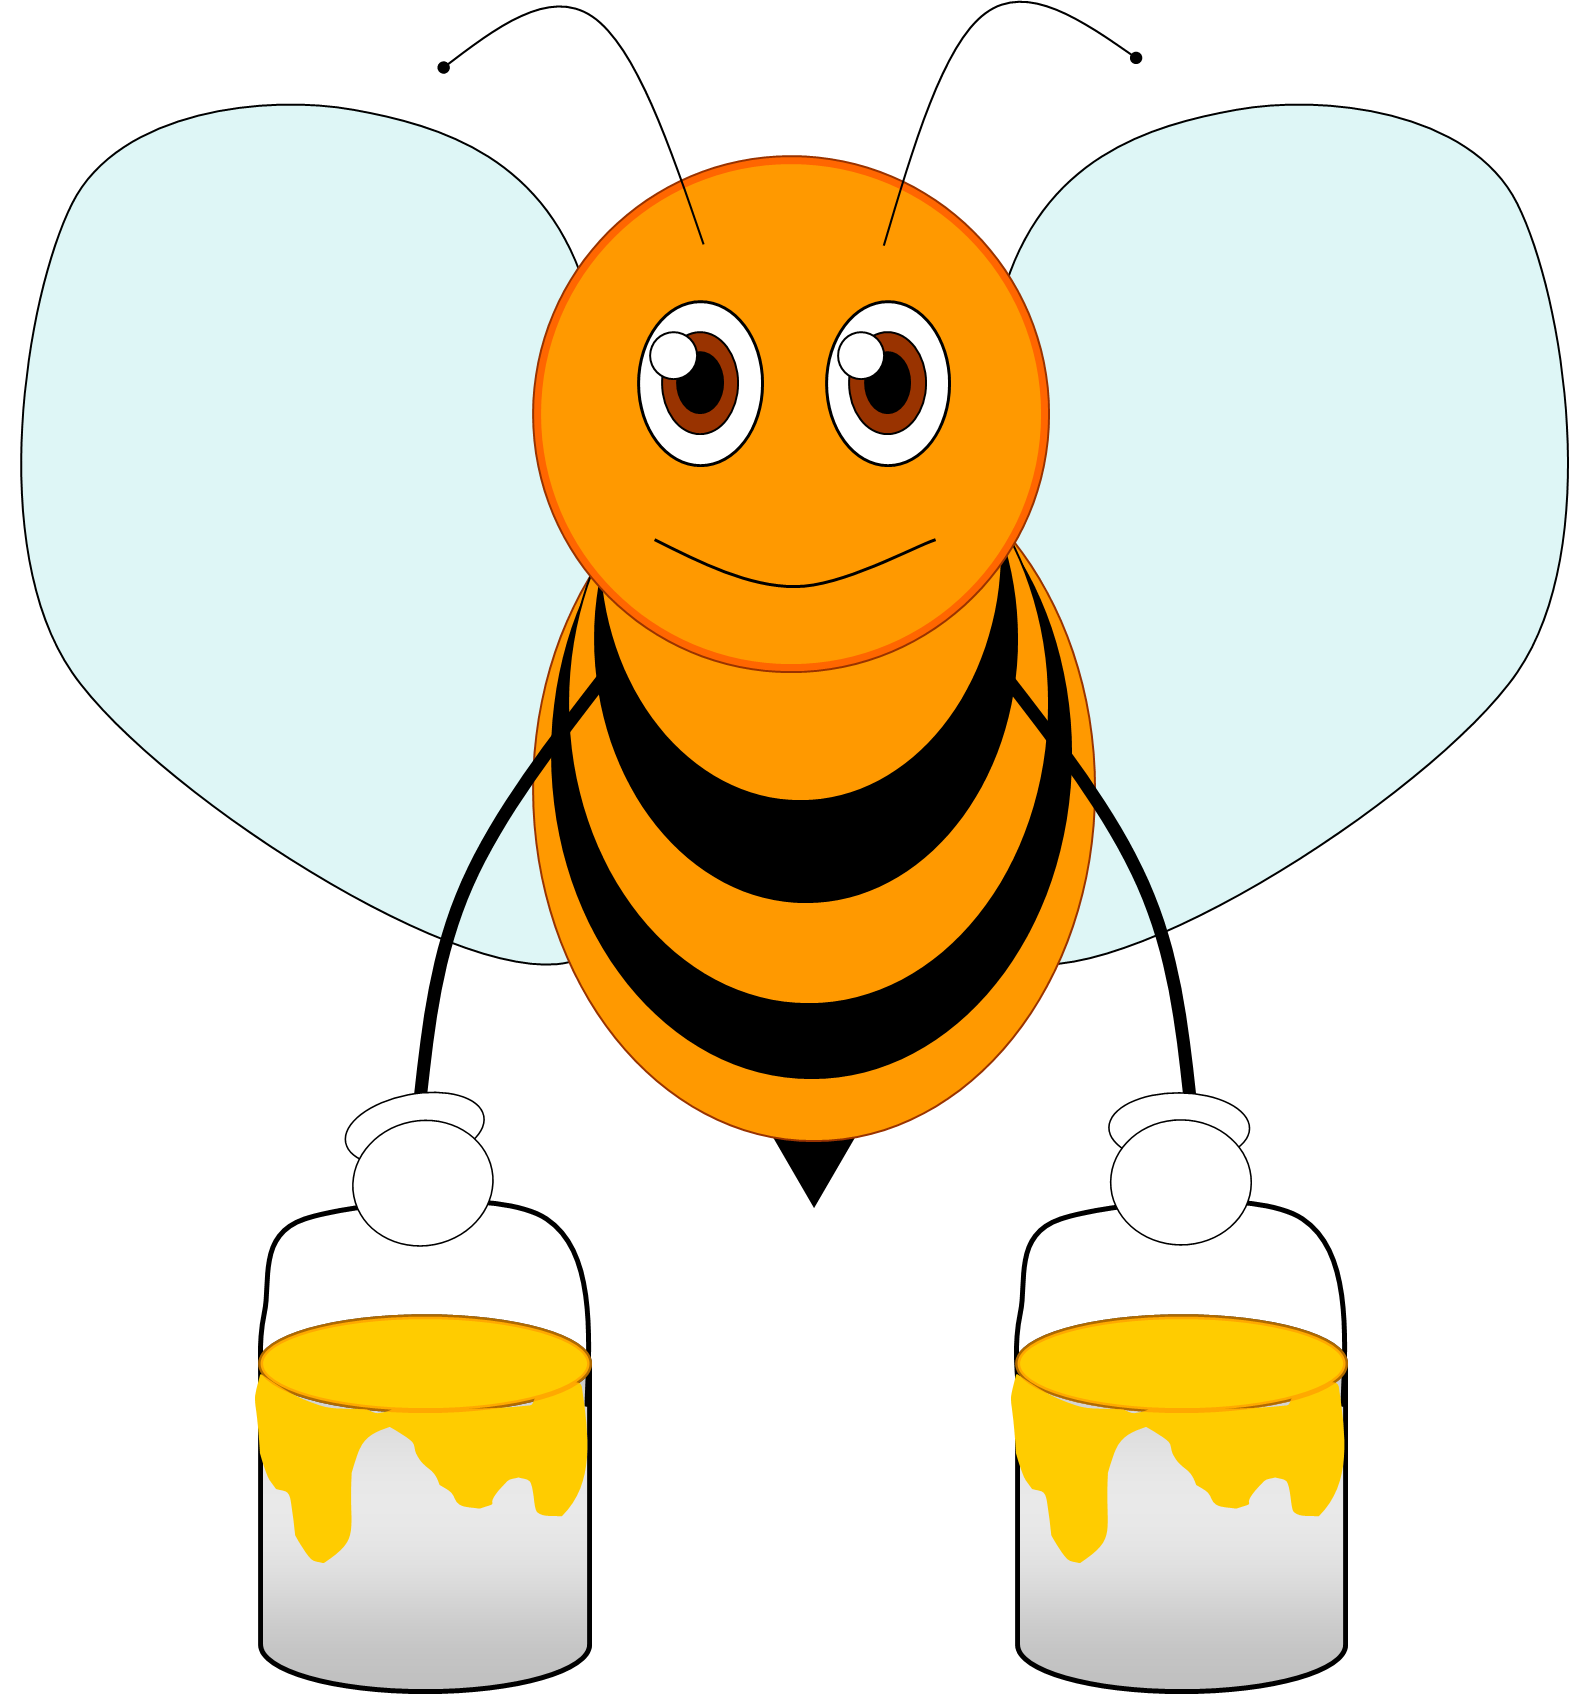 Bee 2 image - vector clip art online, royalty free & public domain